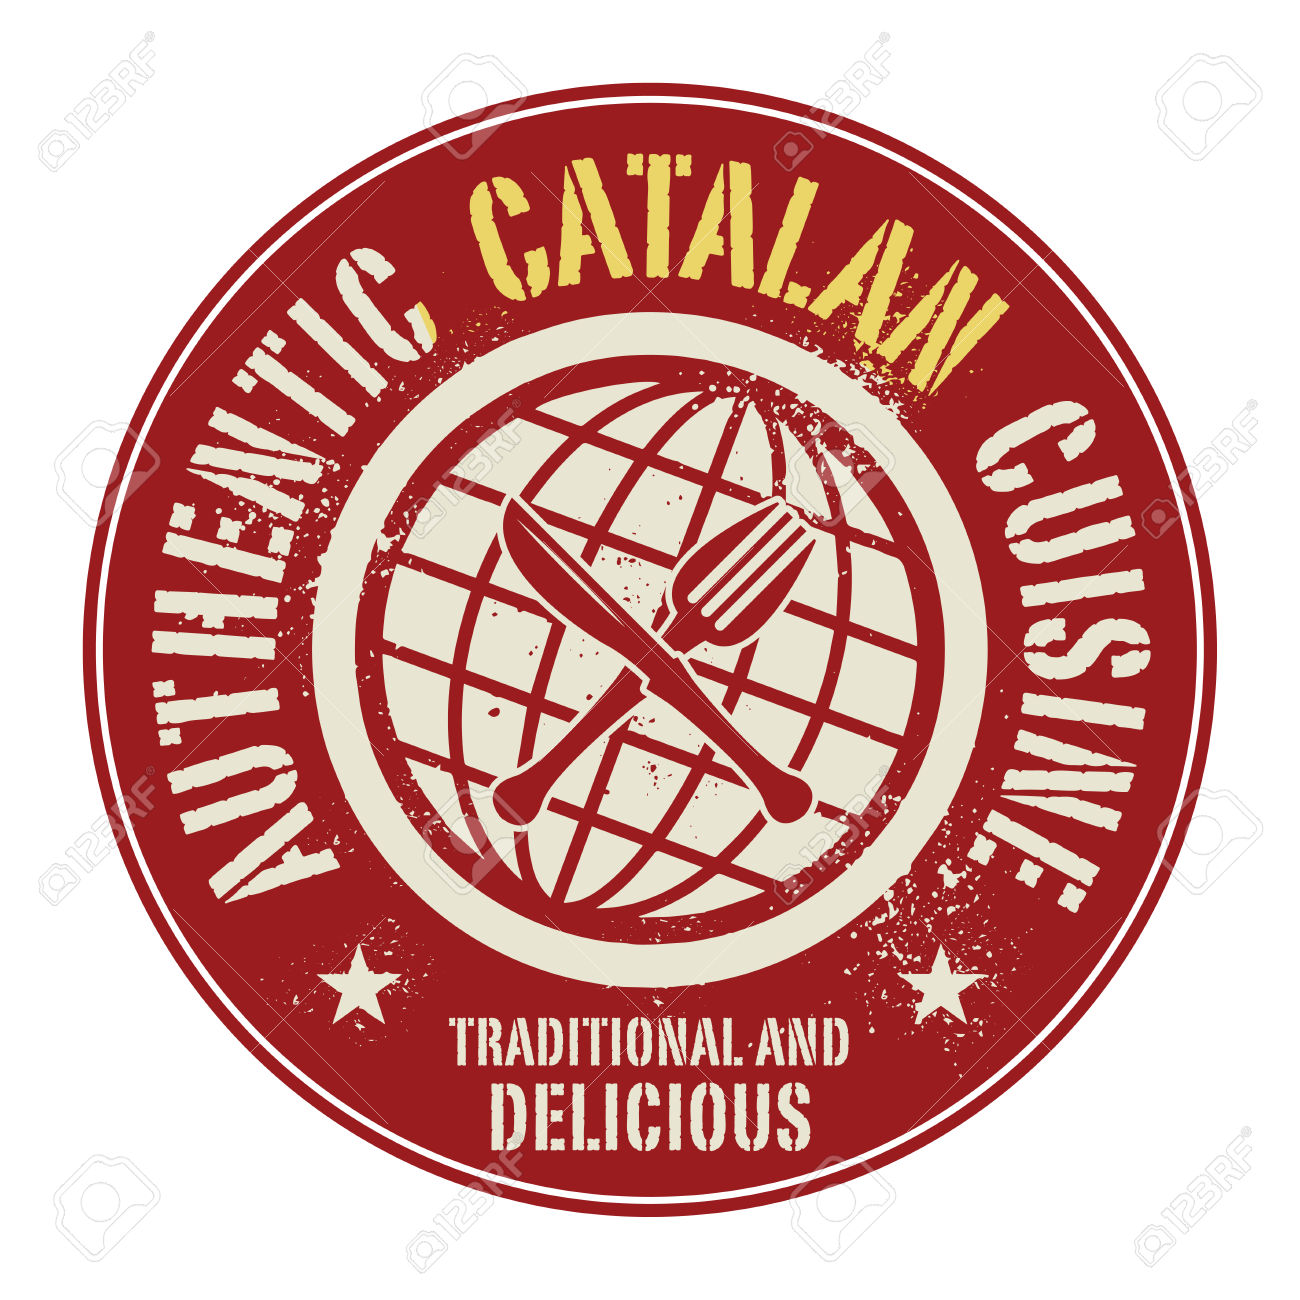 Abstract Stamp Or Label With The Text Authentic Catalan Cuisine.